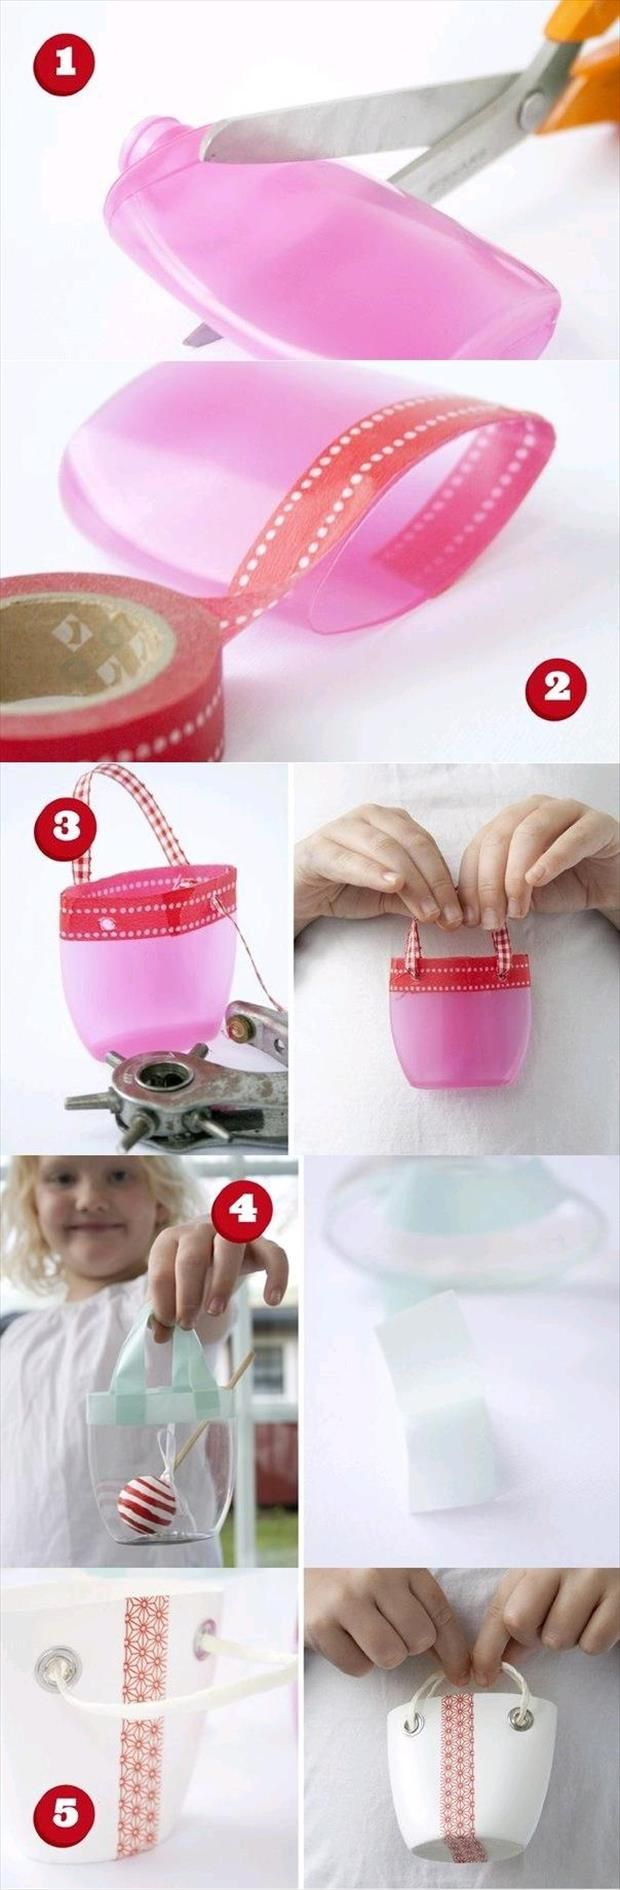 how to make a small purse